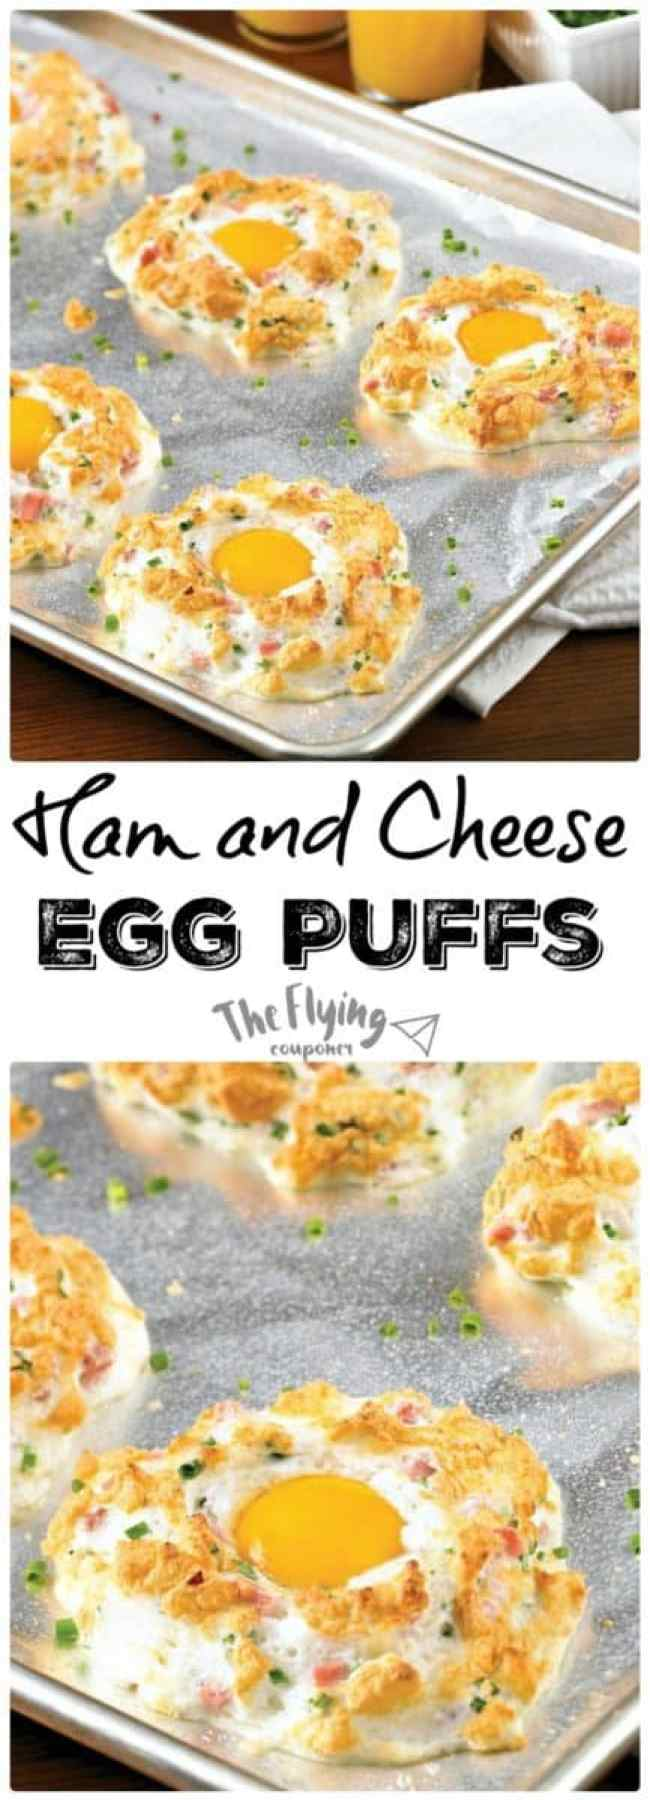 Egg And Cheese Puffs Recipe — Dishmaps